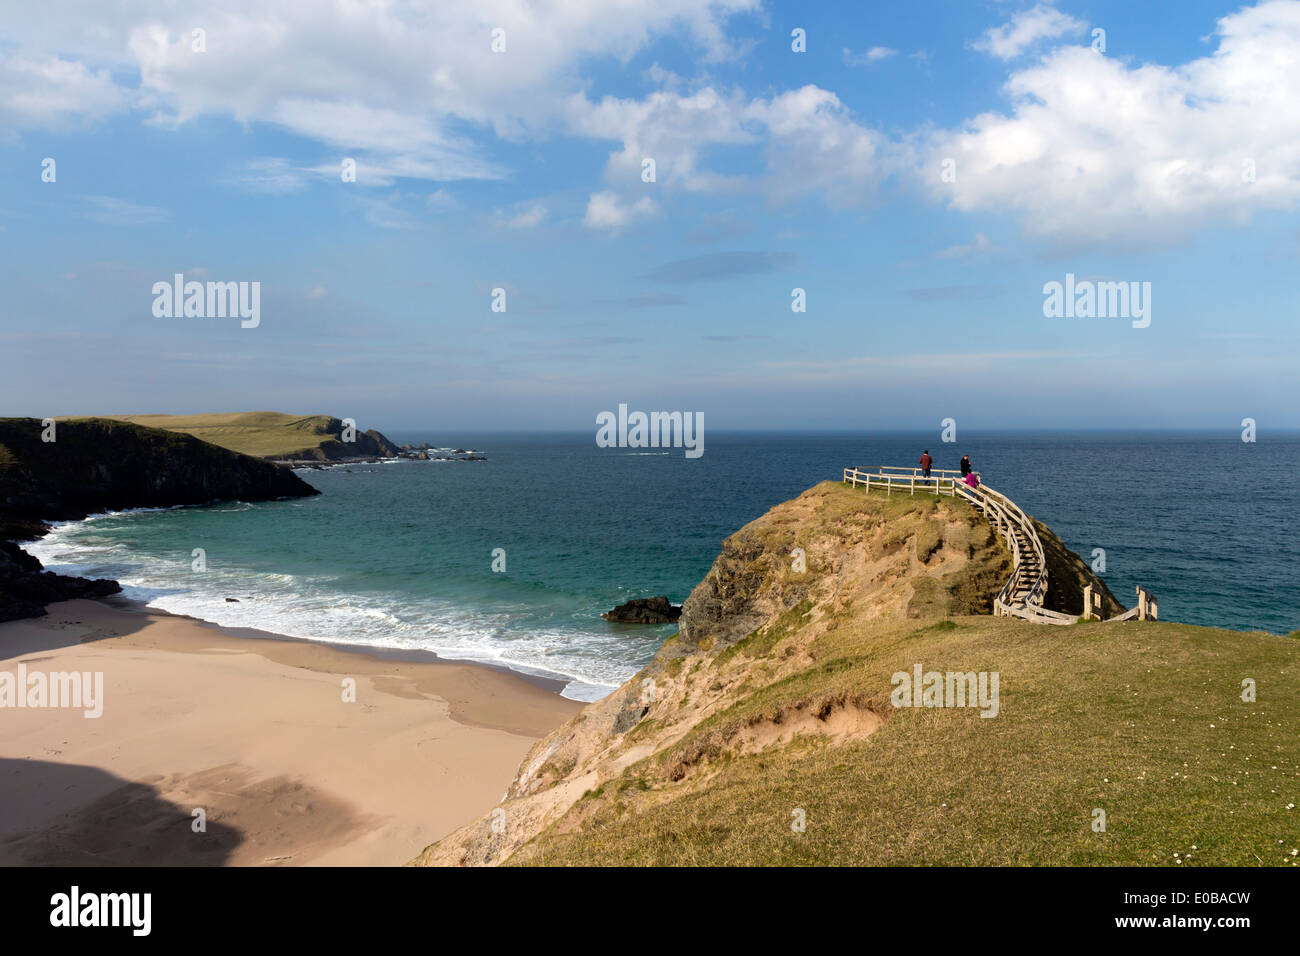 People Enjoying the View from the Viewpoint at Sango Bay Durness Scotland - Stock Image